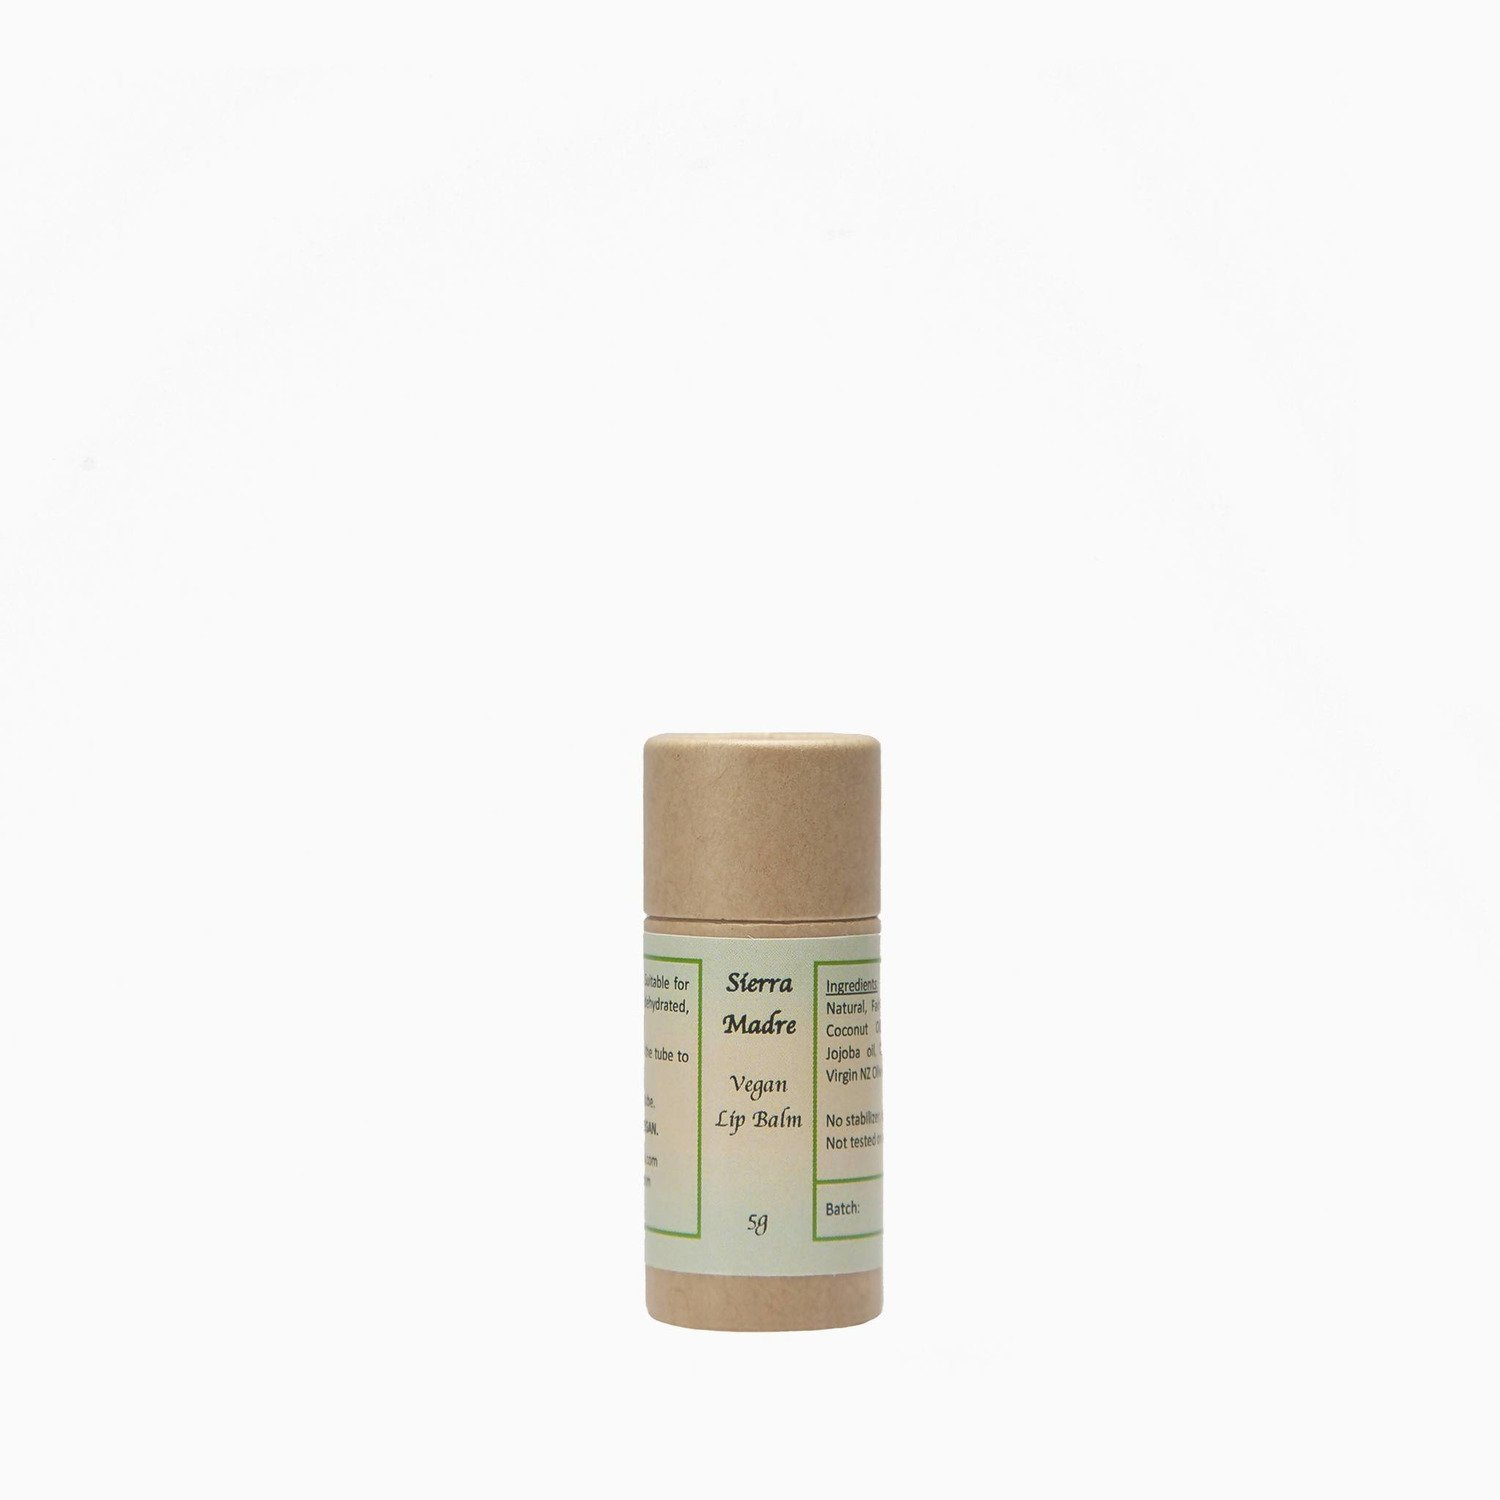 Sierra Madre VEGAN Lip Balm